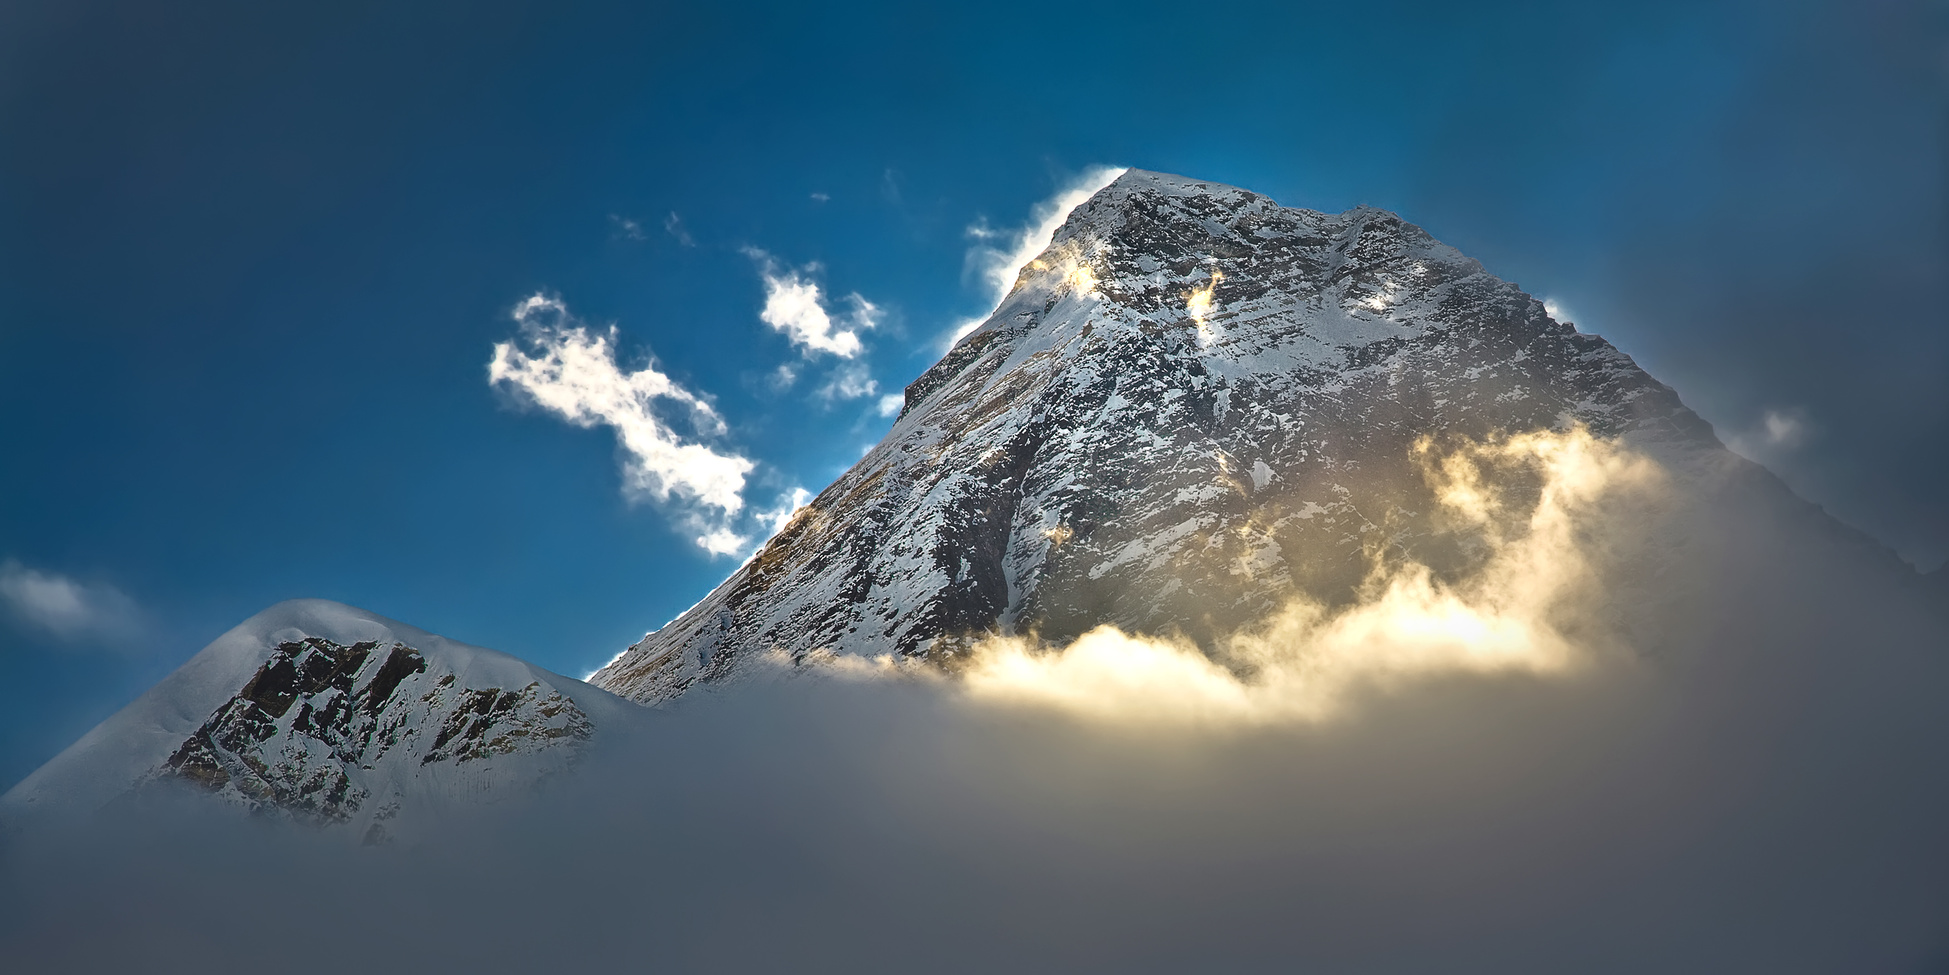 The peak of the highest mountain in the world - Mt. Everest in the light of the first sunrays.